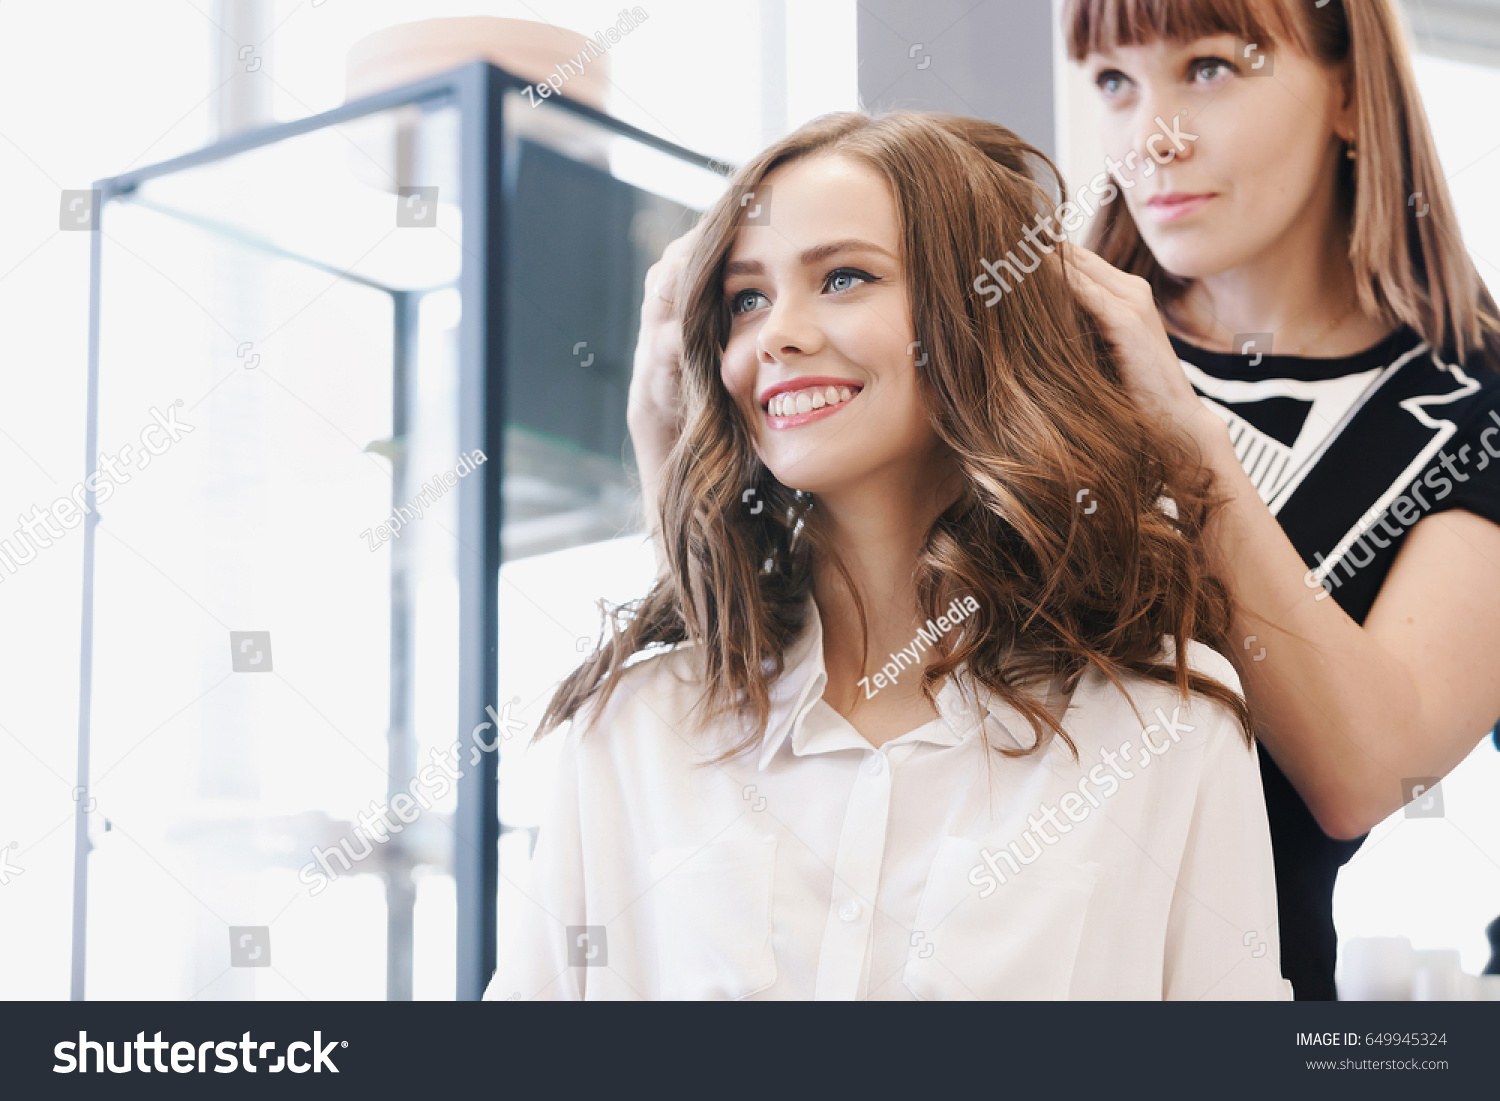 Closeup hairdresser makes hairstyle for young woman in beauty salon #649945324